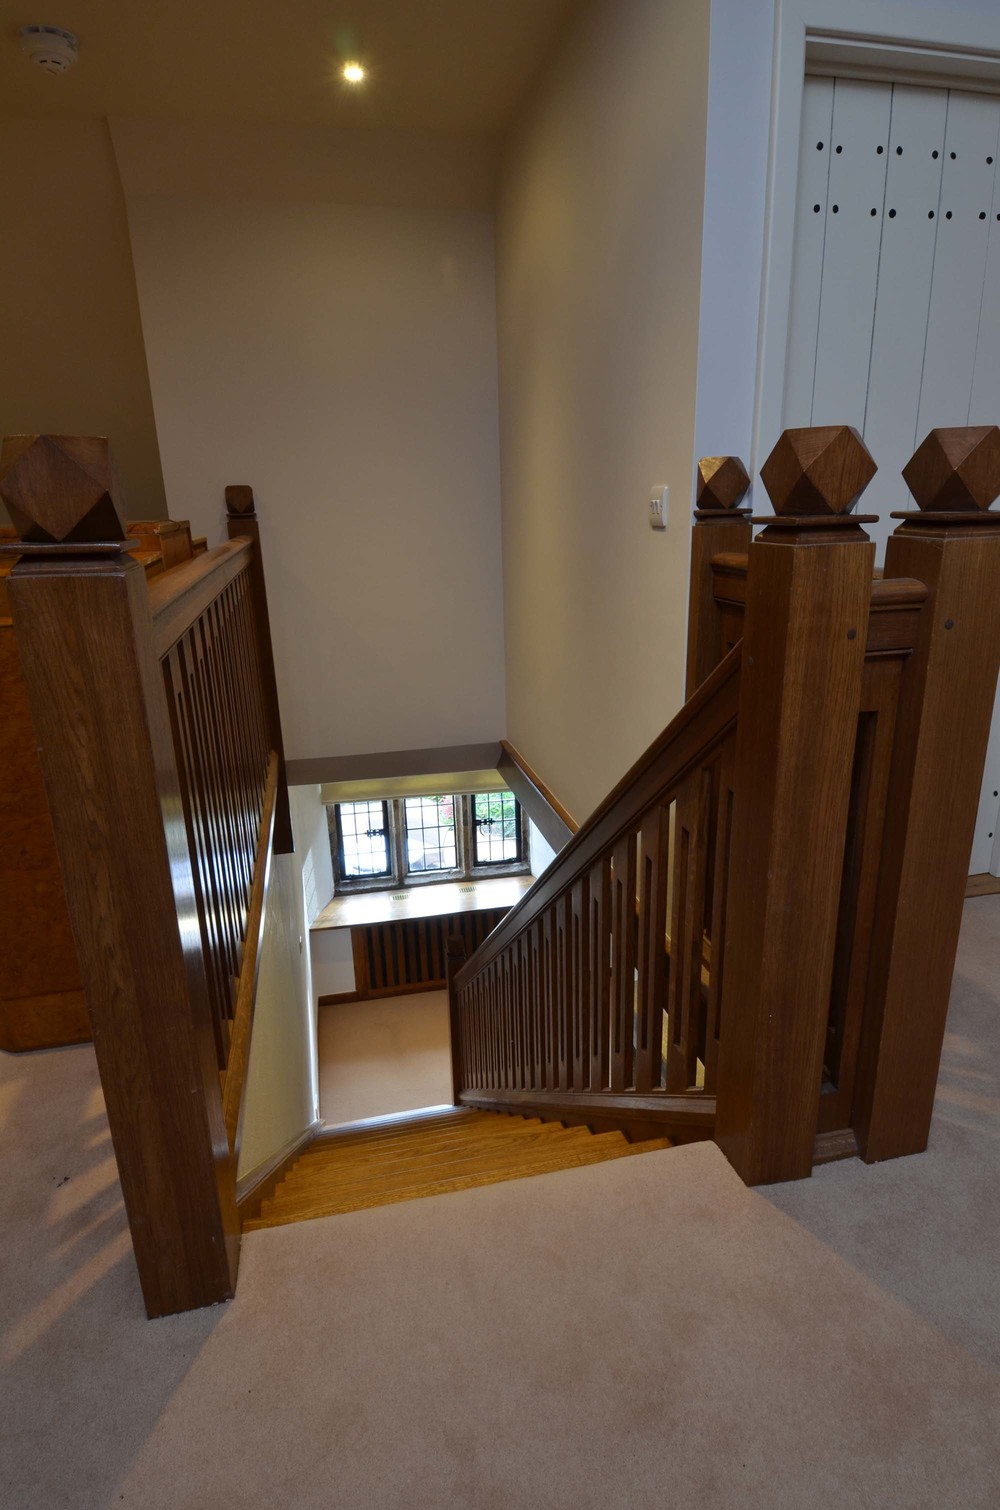 29 Period style staircase hand made in solid oak with period mouldings and oak handrail.jpg